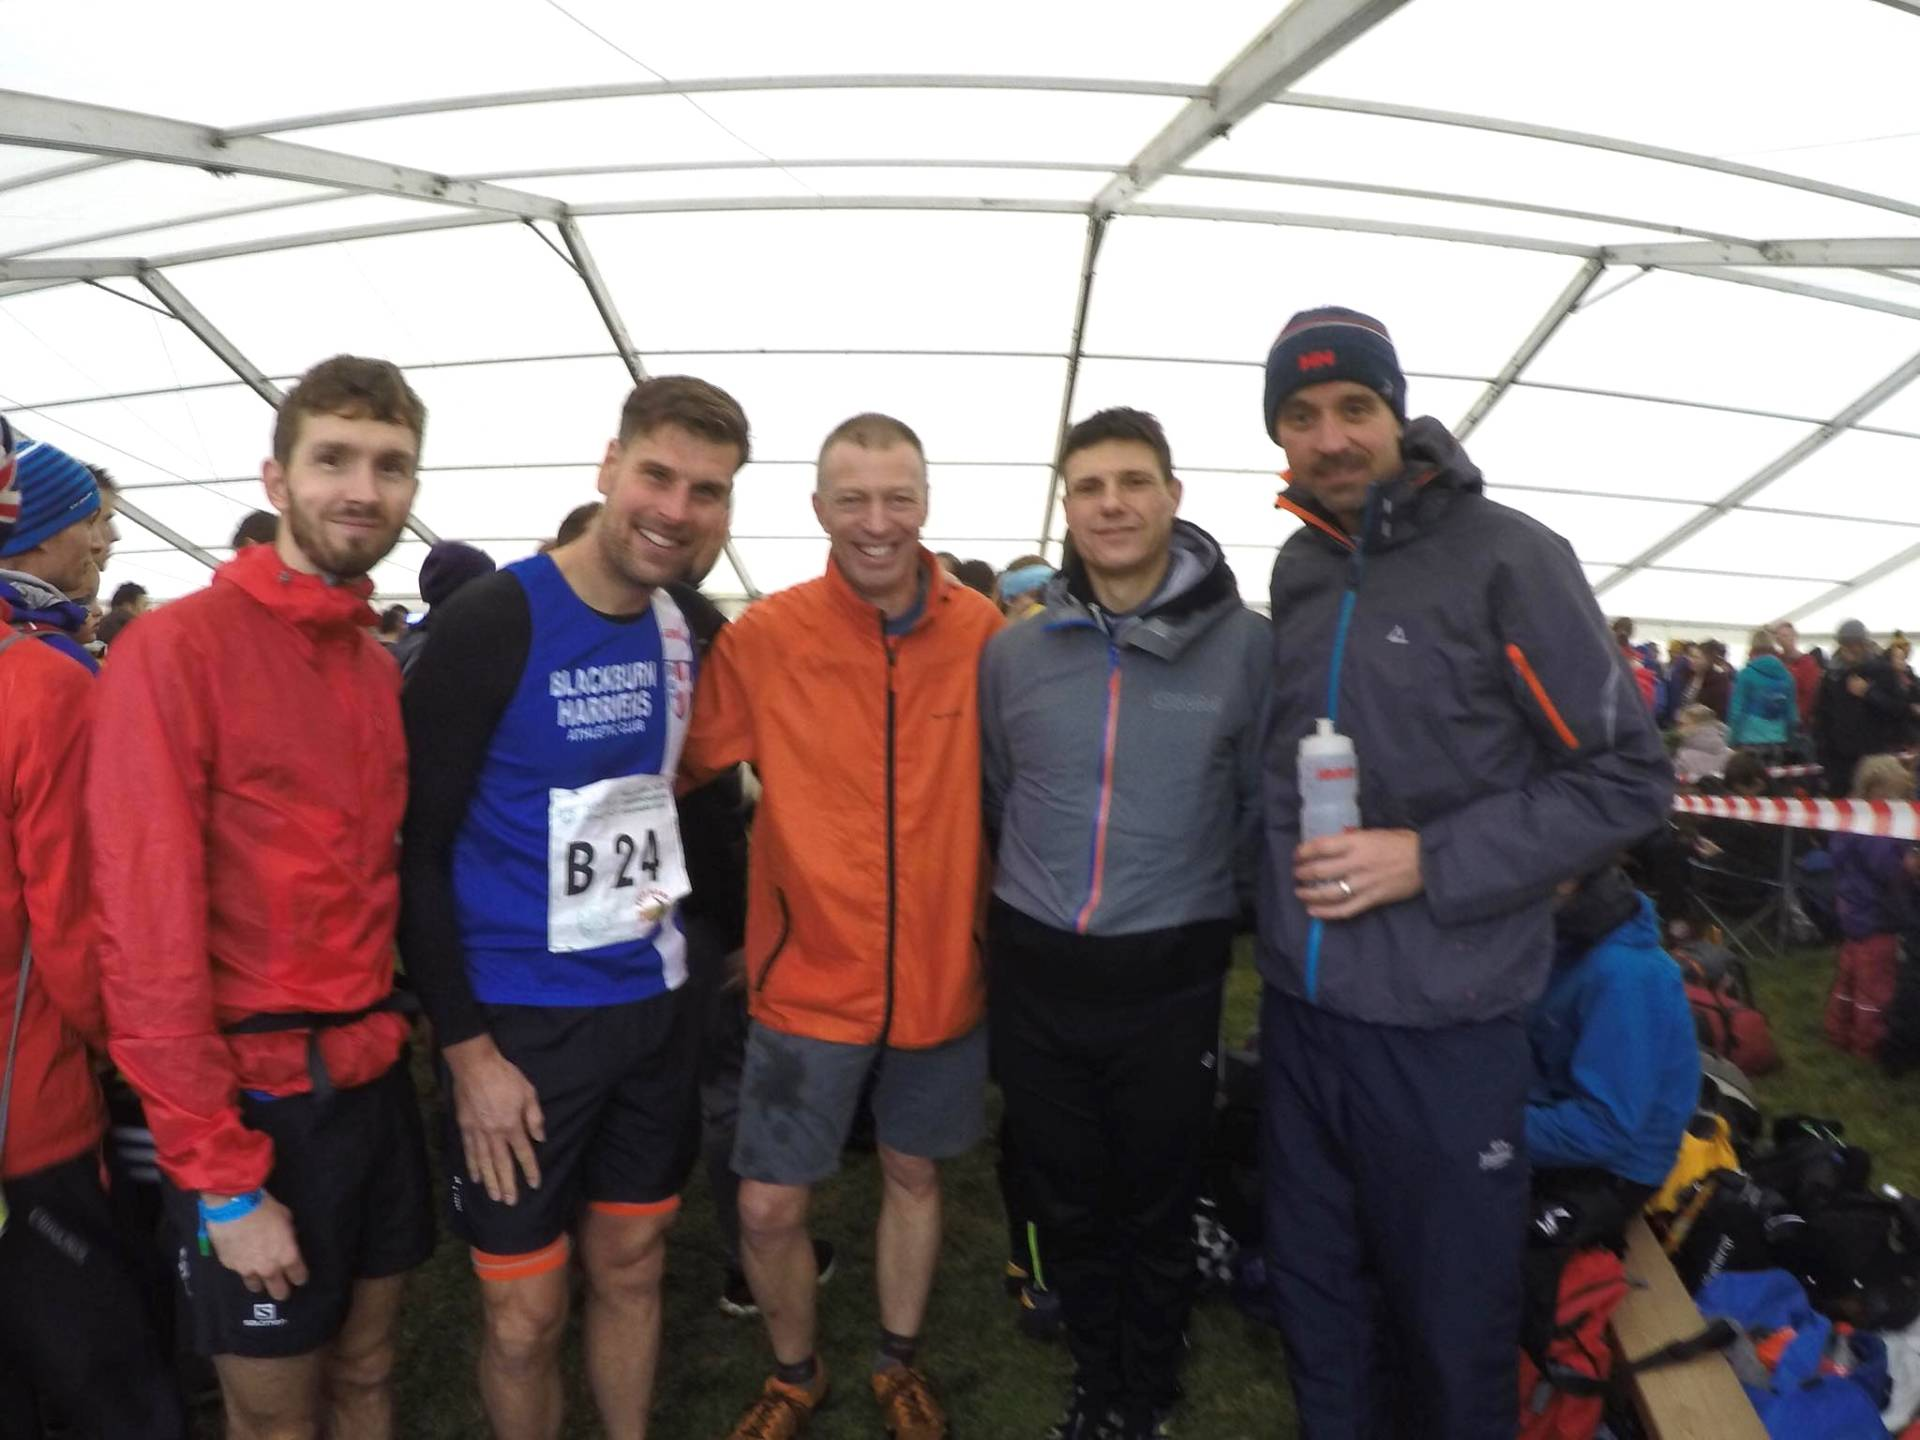 British Fell Relays Championships with the Harriers – U11 & U13's at Northern Cross Country Relays – New PB for Carly at Green Drive 5 – Amsterdam Marathon with Jonathan